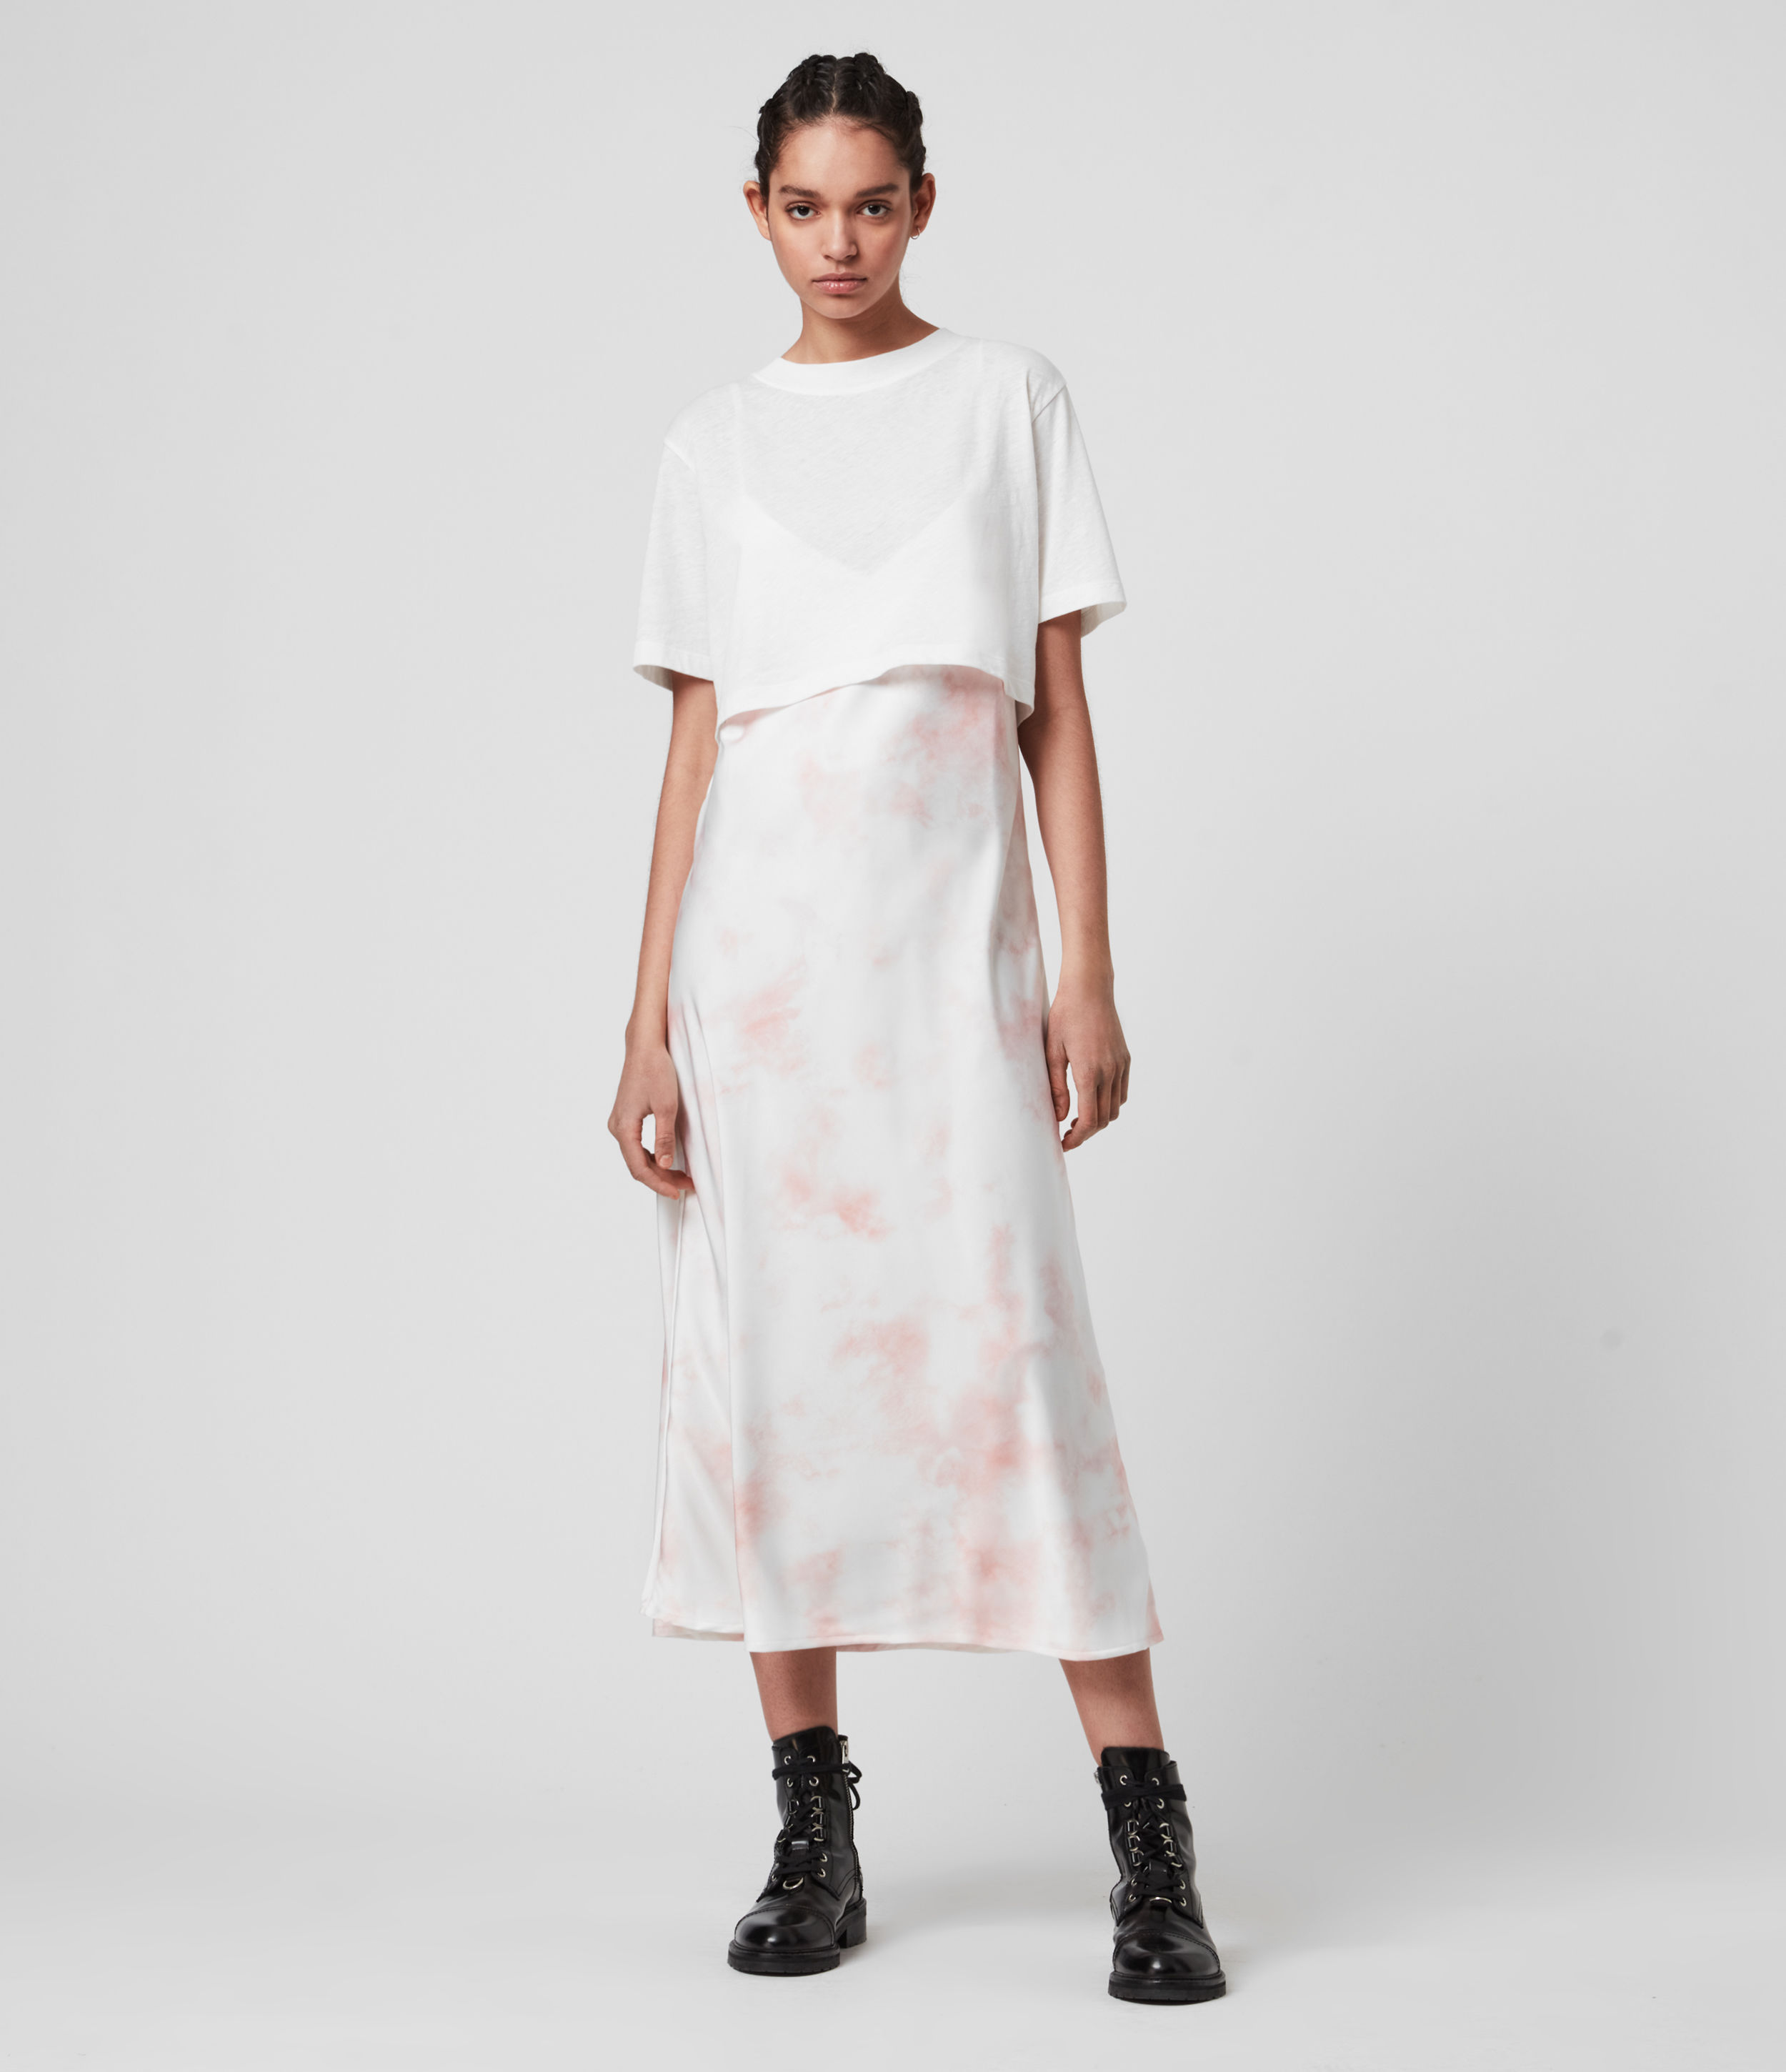 AllSaints Women's Cotton Benno Dye 2-in-1 T-Shirt Dress, White and Pink, Size: XS